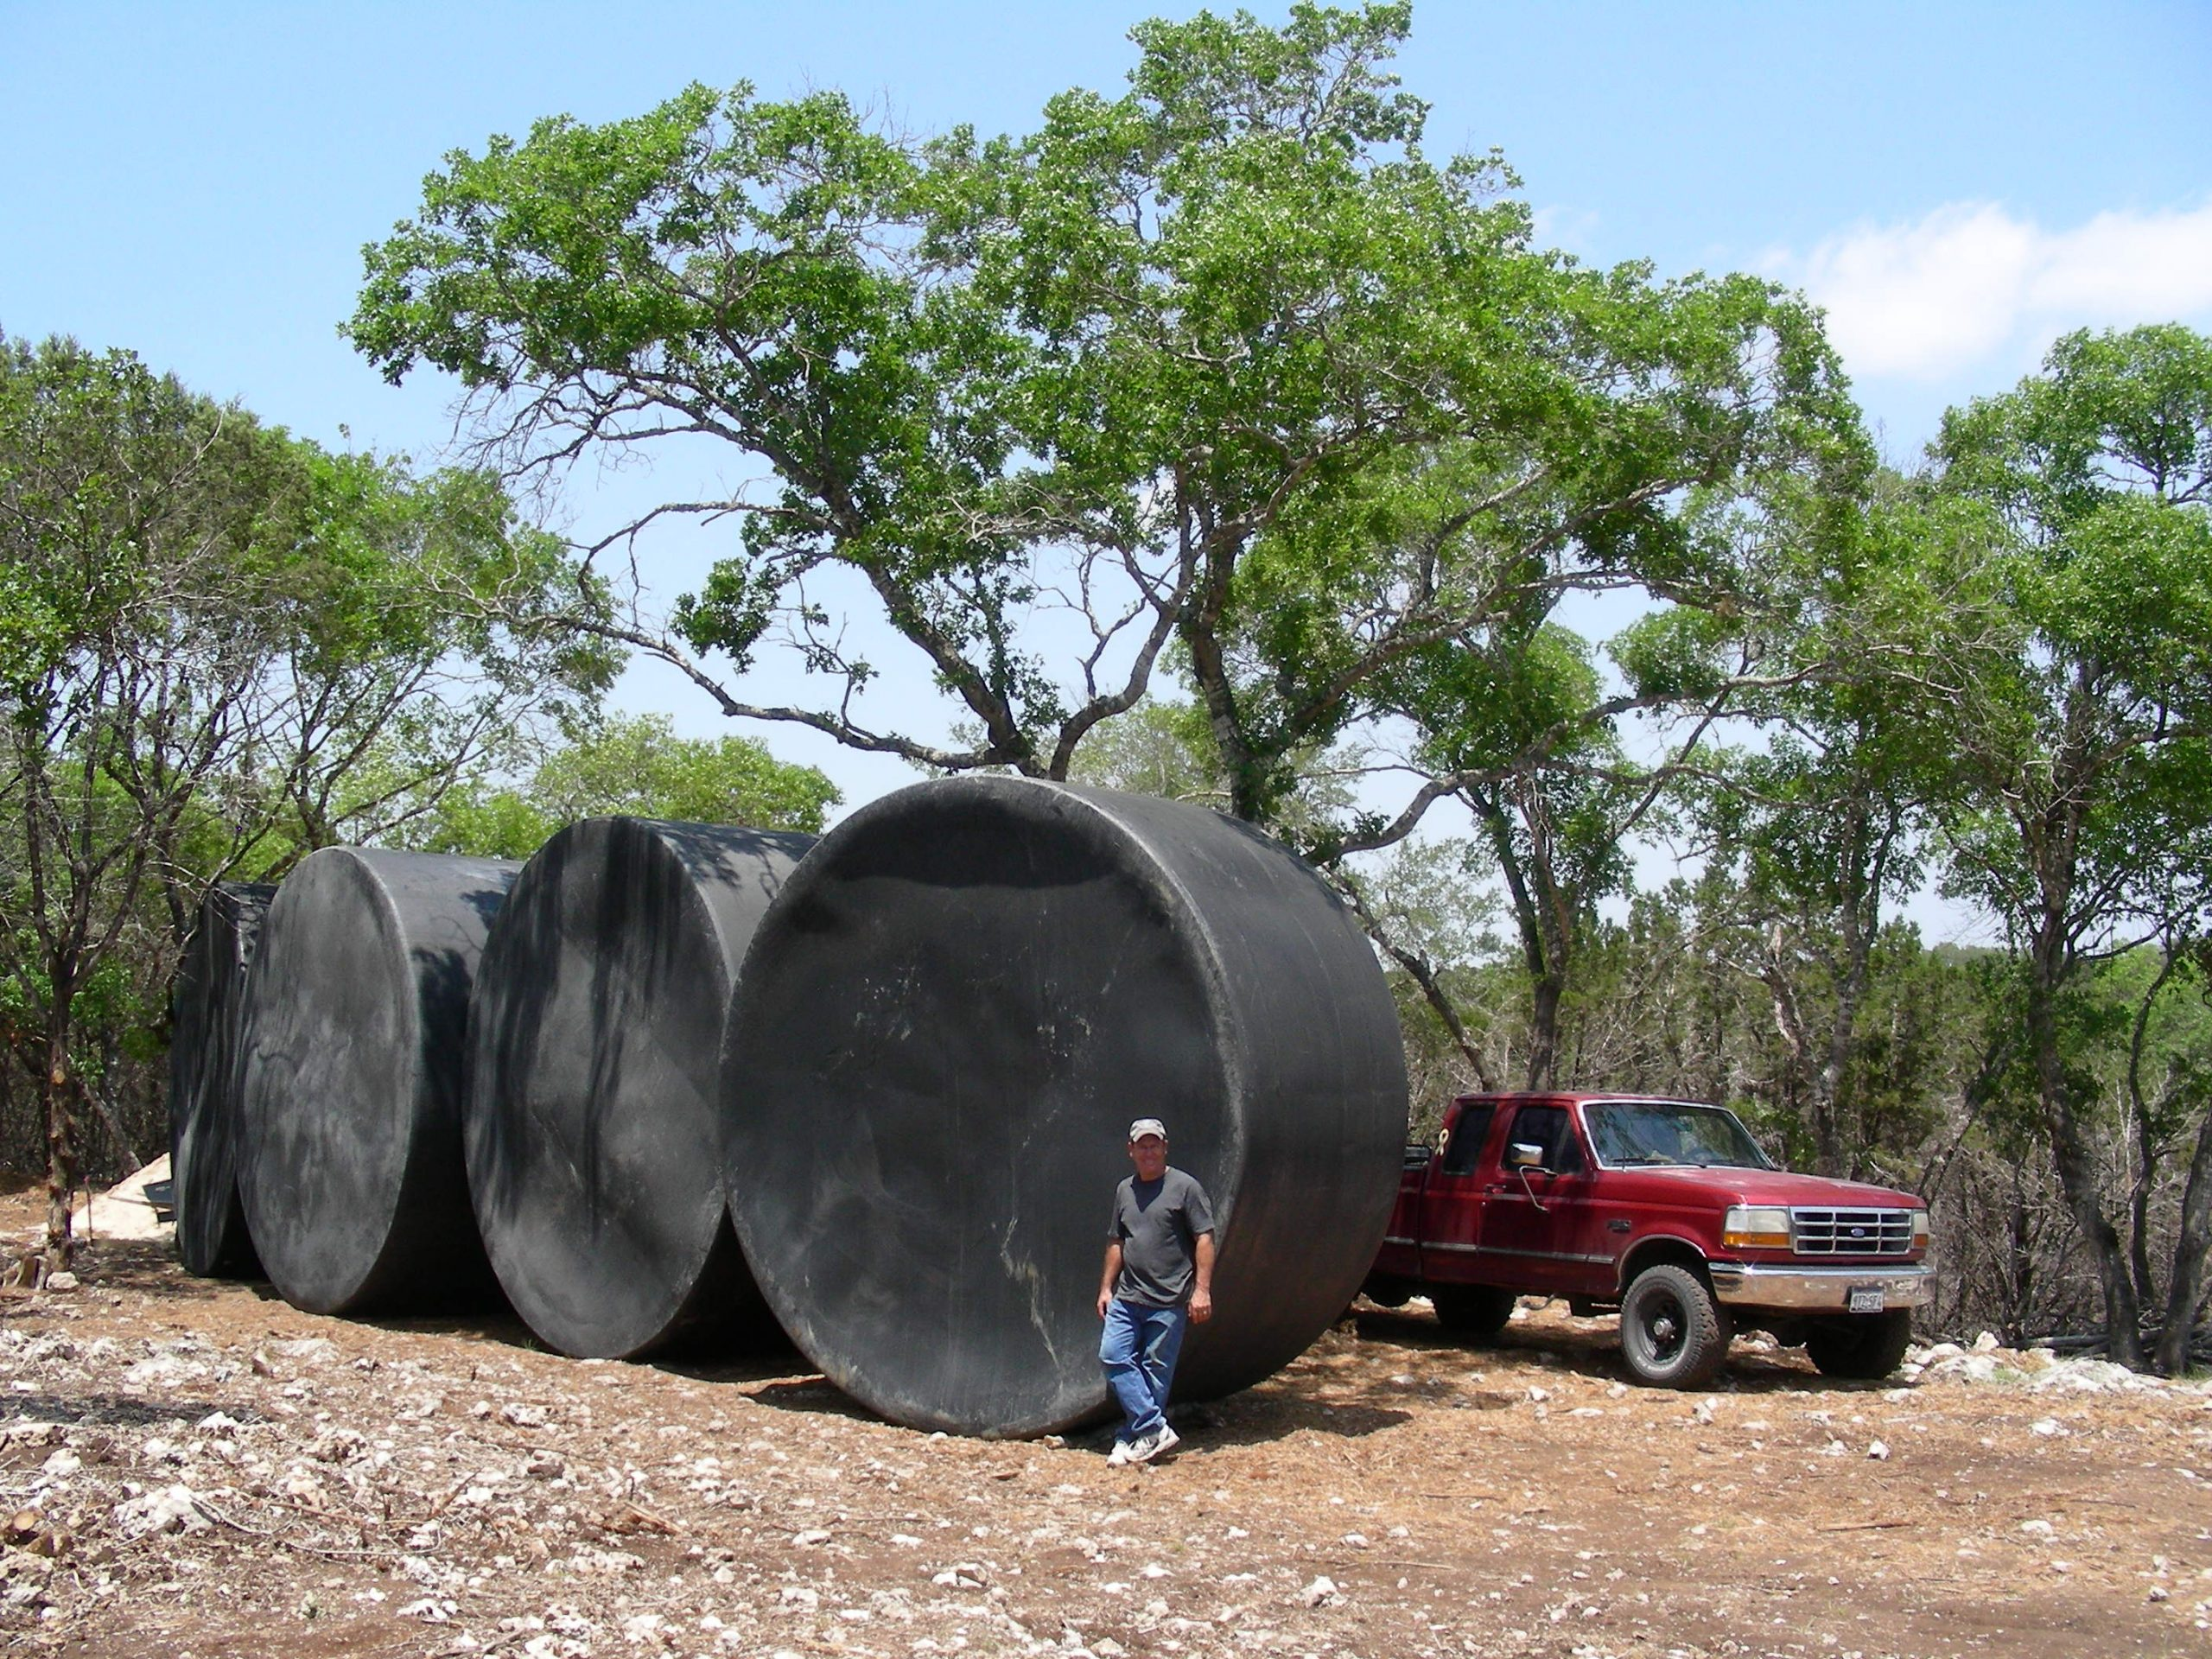 The four 5,000 gallon storage tanks that form the core of a residential rainwater harvesting system. Photo by Andrew Michalec